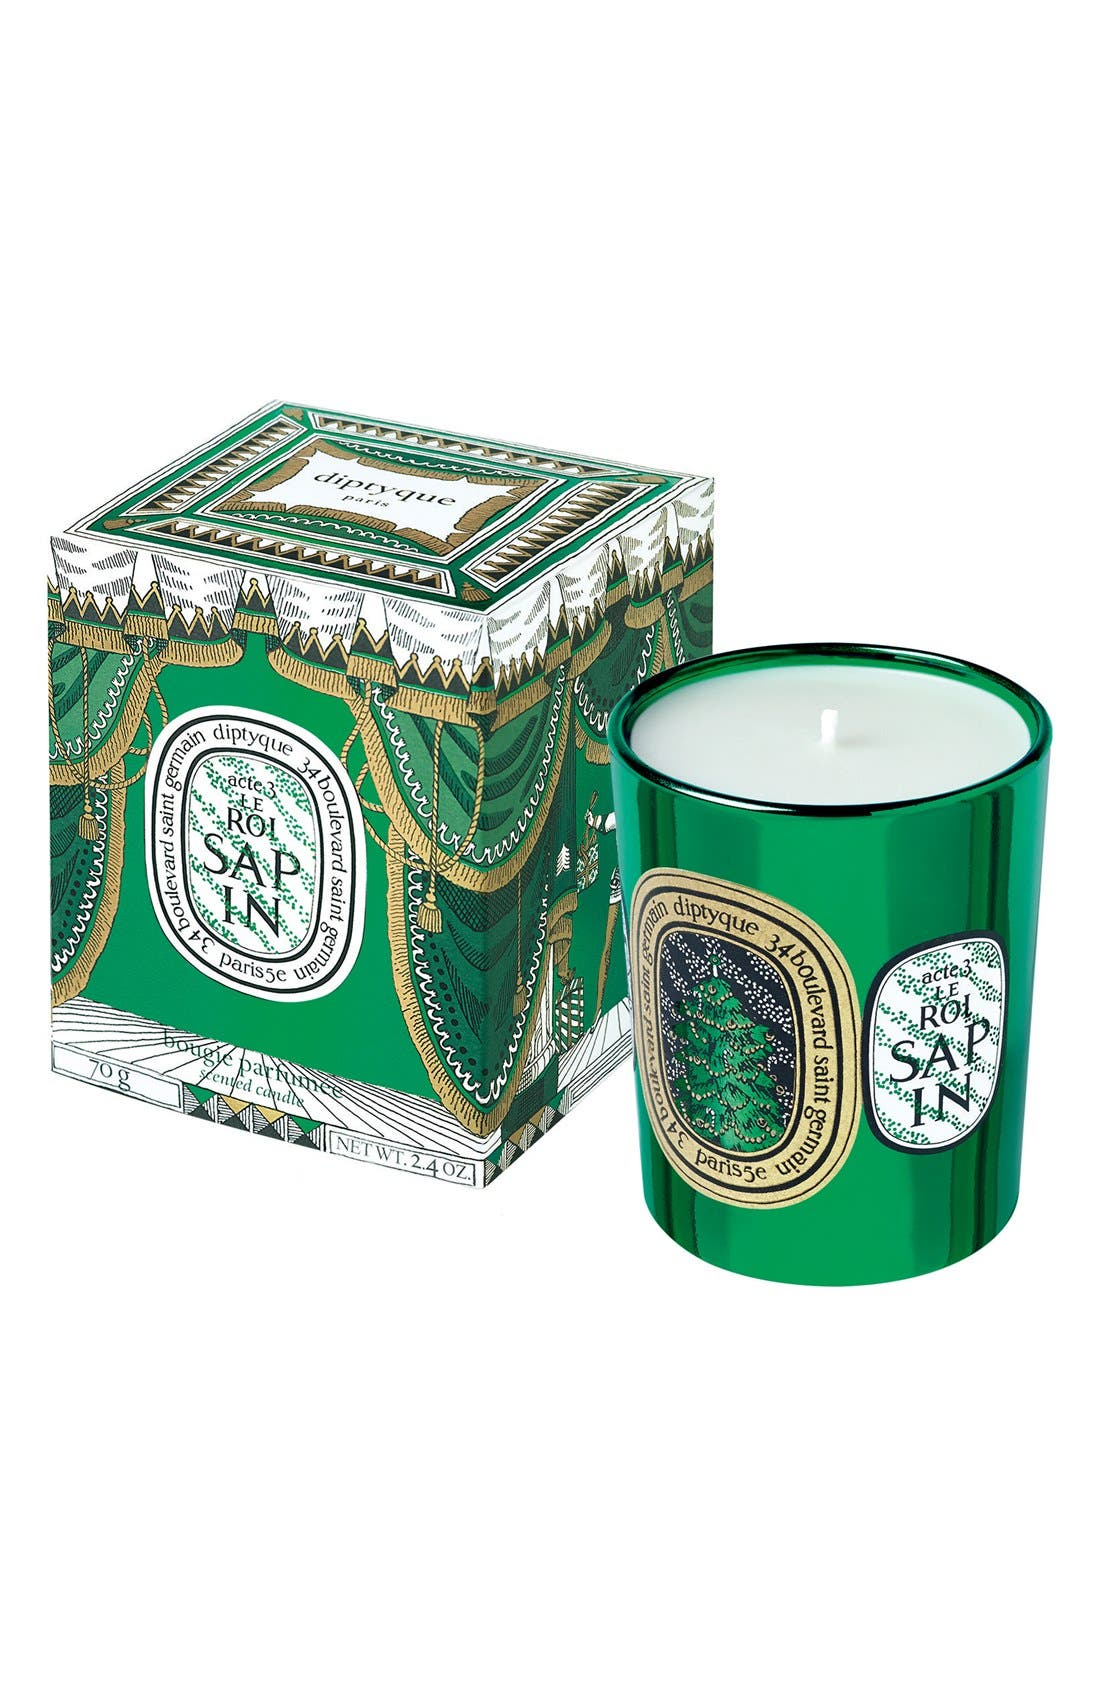 Alternate Image 1 Selected - diptyque A Night at diptyque Act 3 Le Roi Sapin/The Festive Fir Tree Mini Candle (Limited Edition)